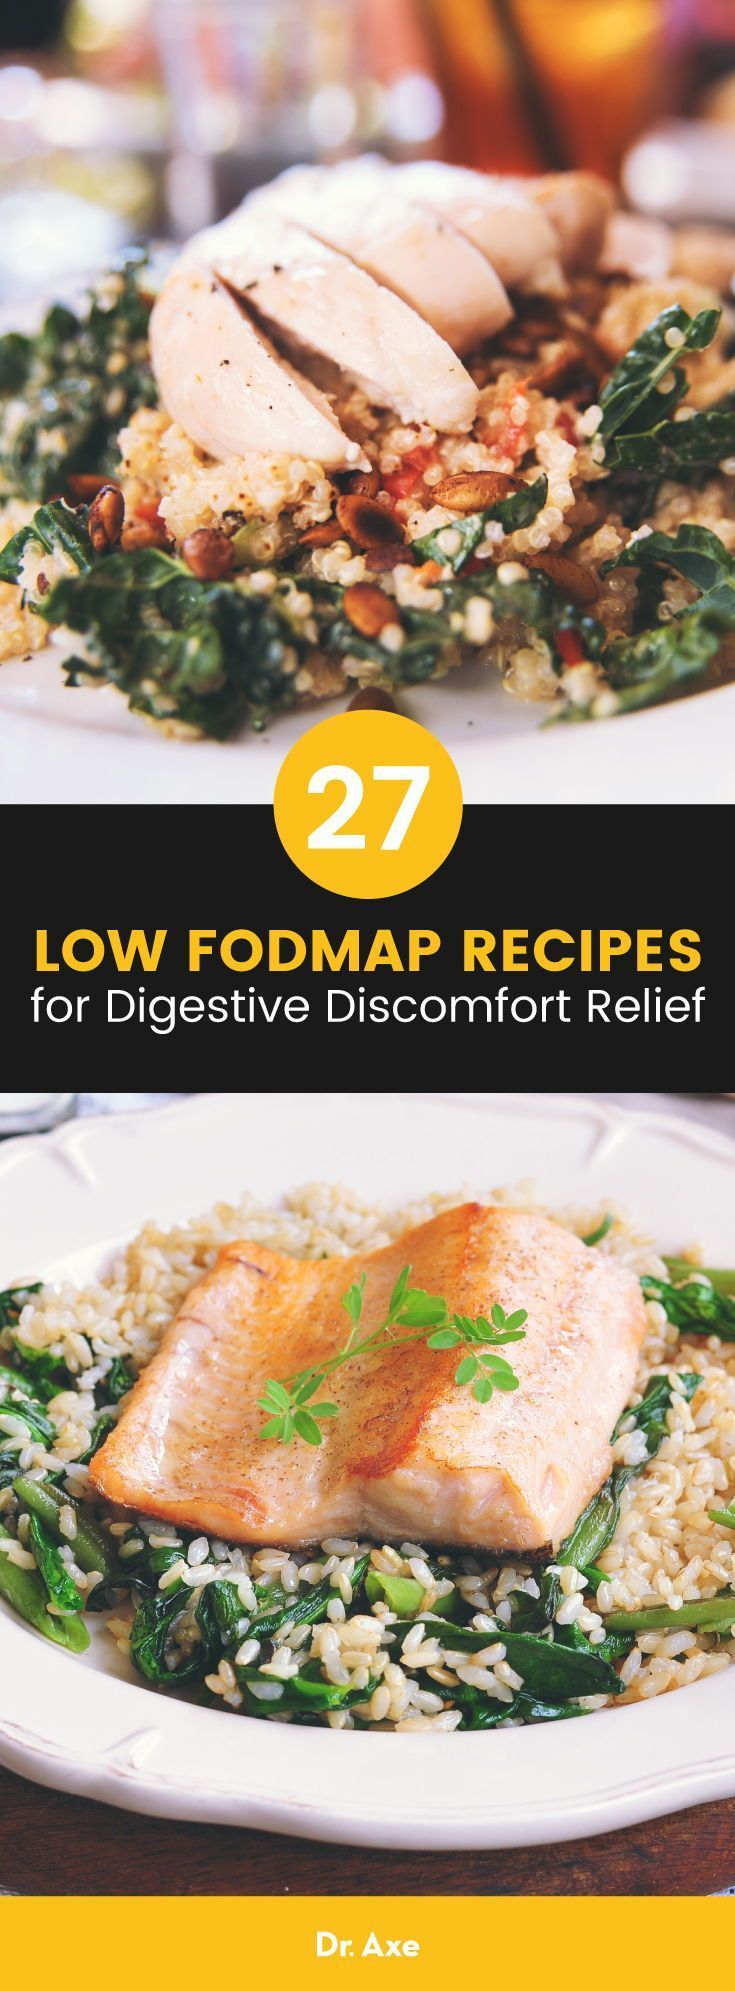 27 Low Fodmap Recipes For Digestive Discomfort Relief